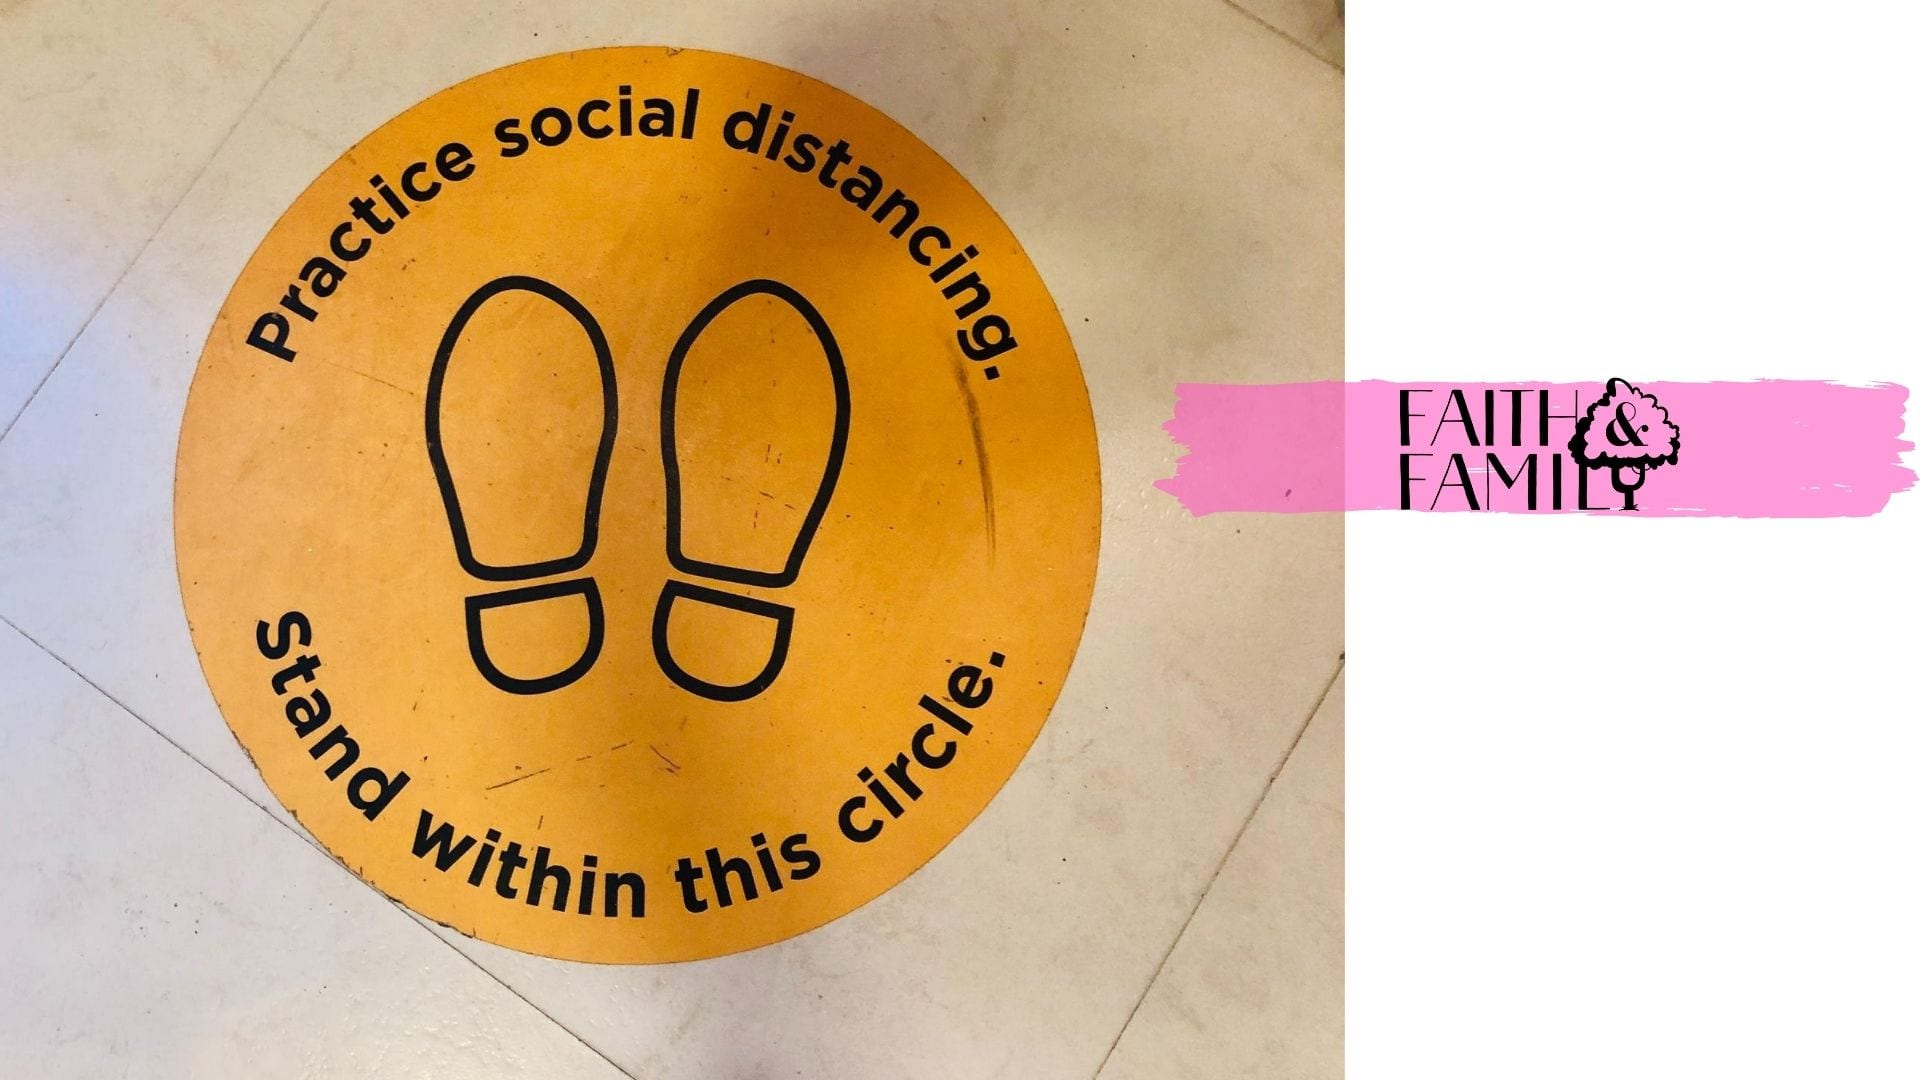 social distancing instructions on floor